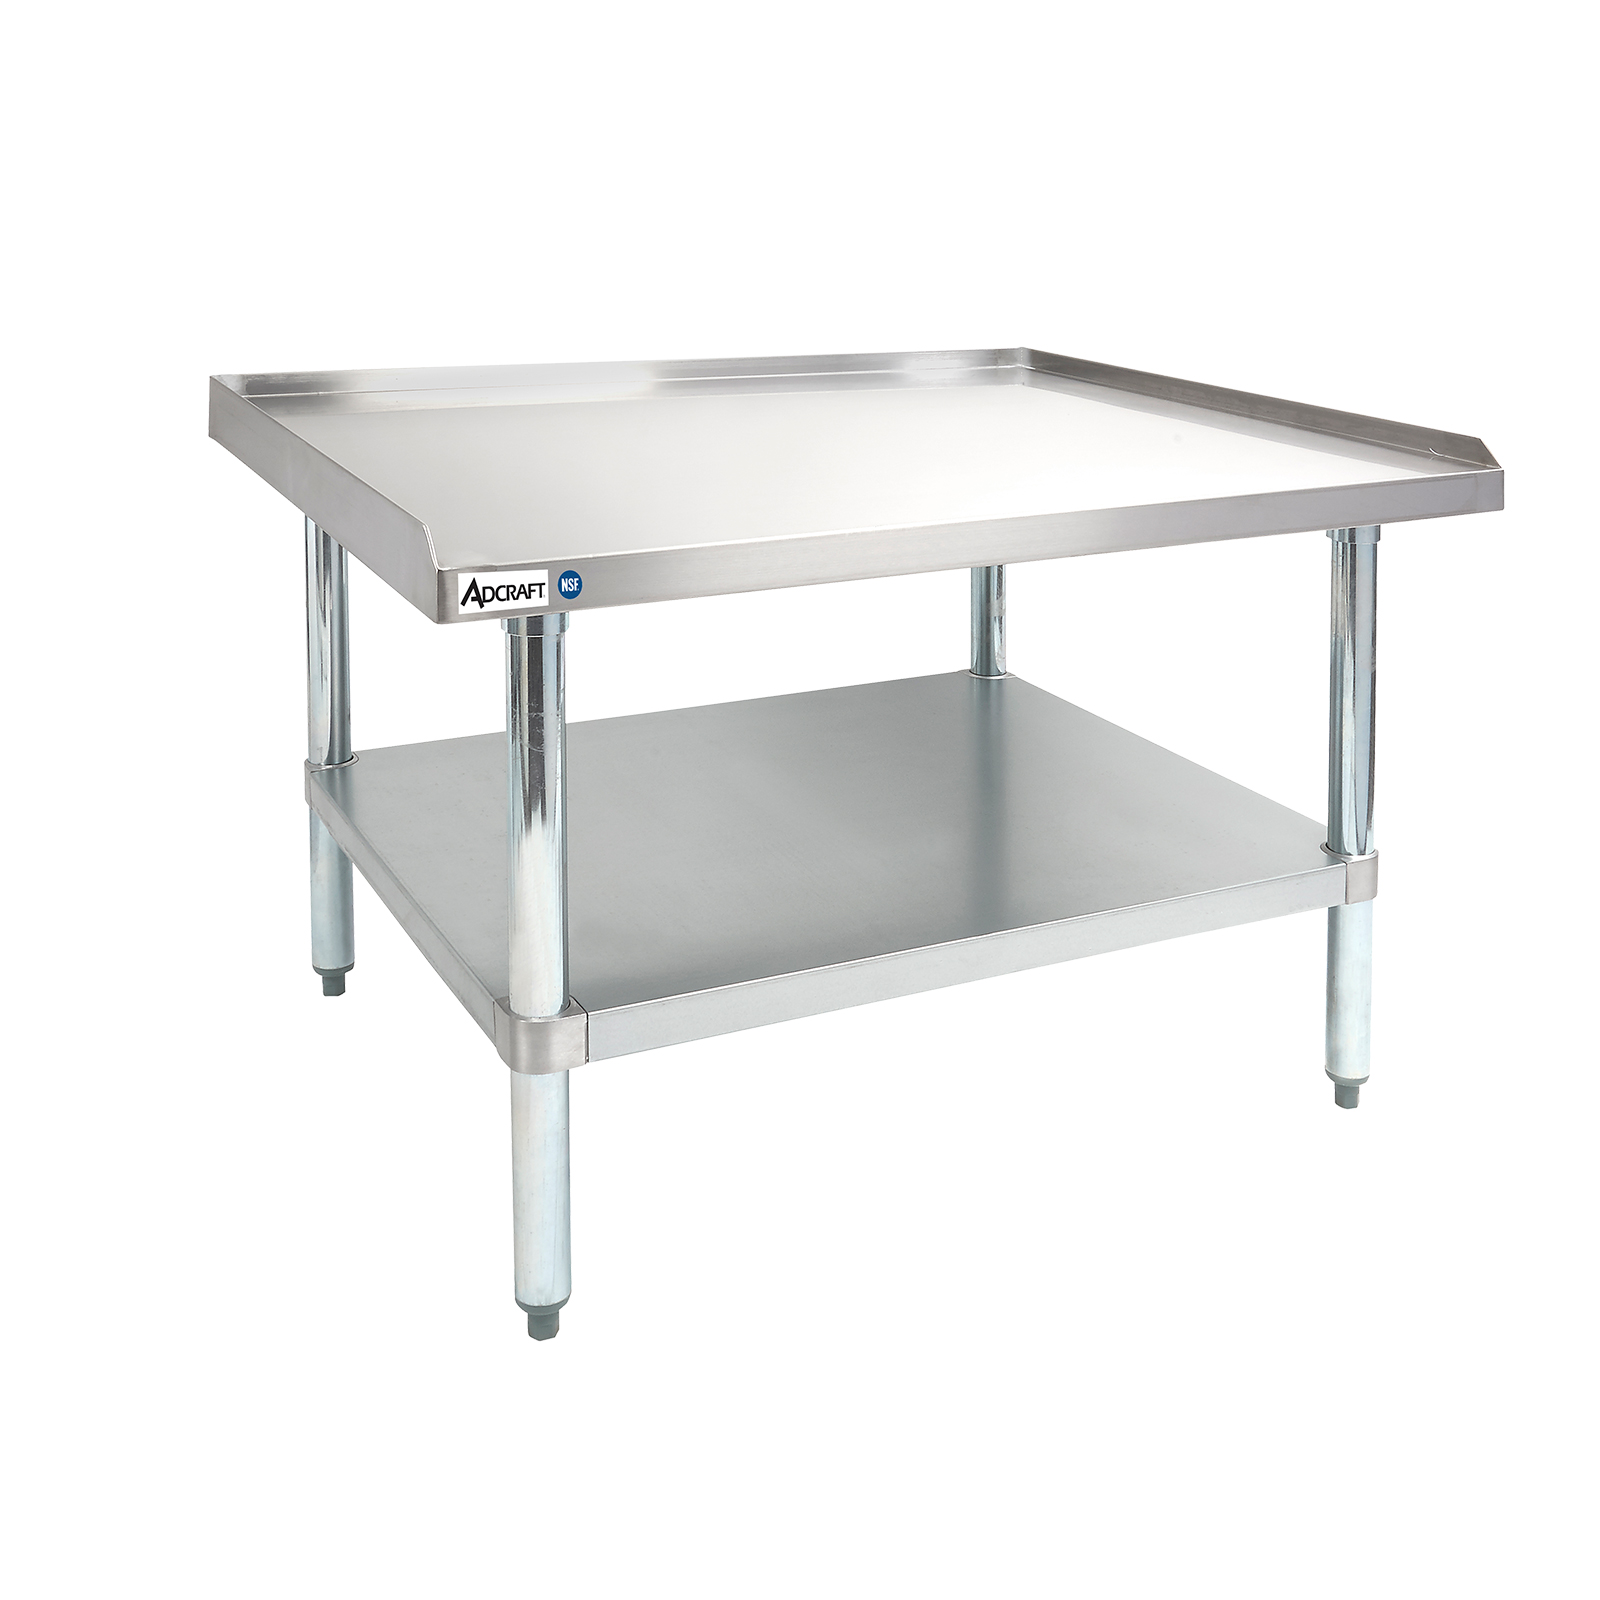 Admiral Craft ES-2448 equipment stand, for countertop cooking